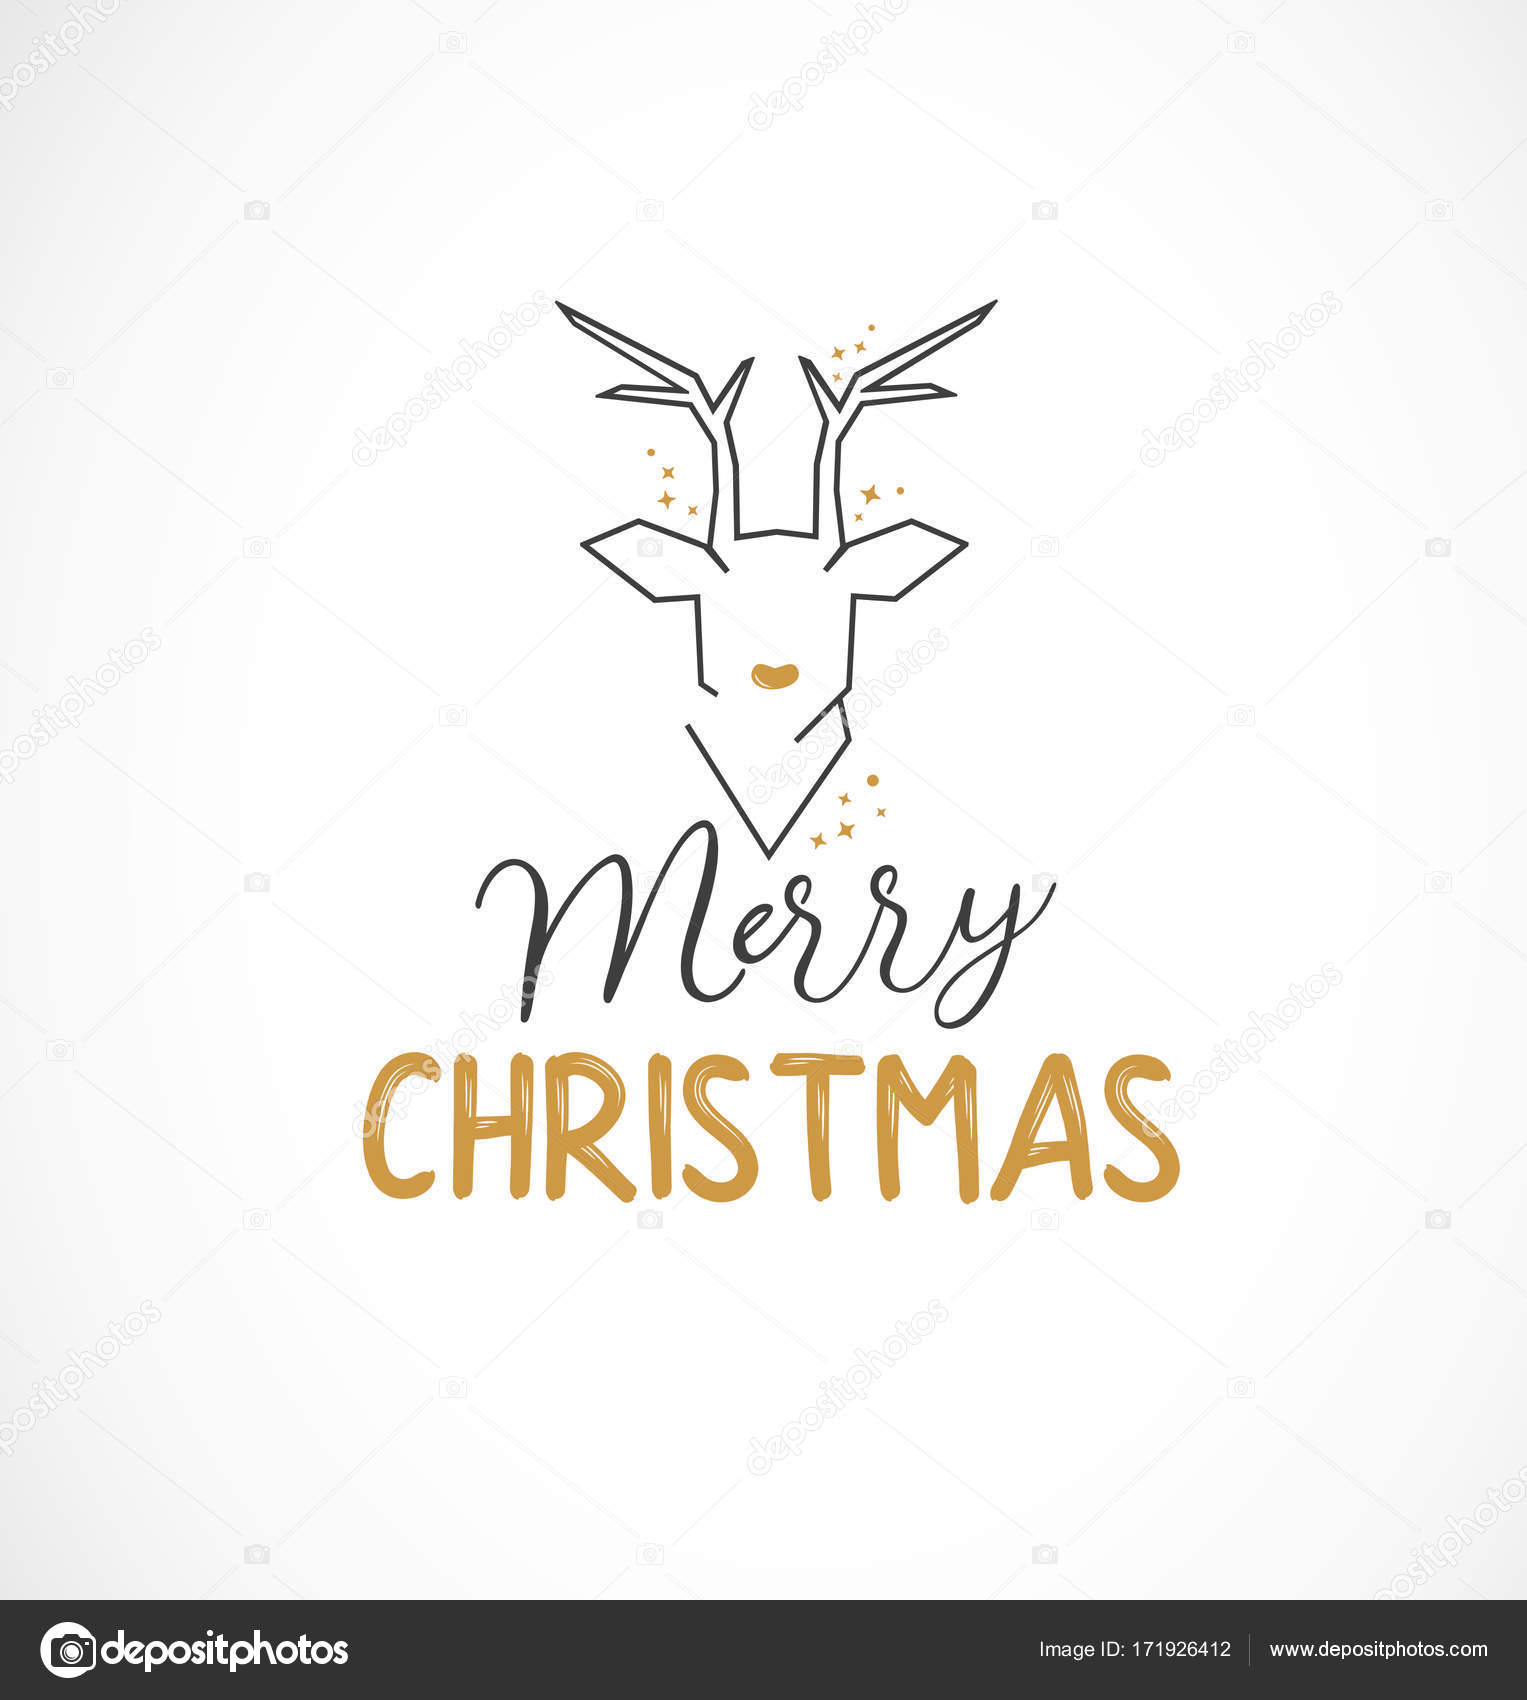 Calligraphic Christmas Greeting Card Design Element With Modern